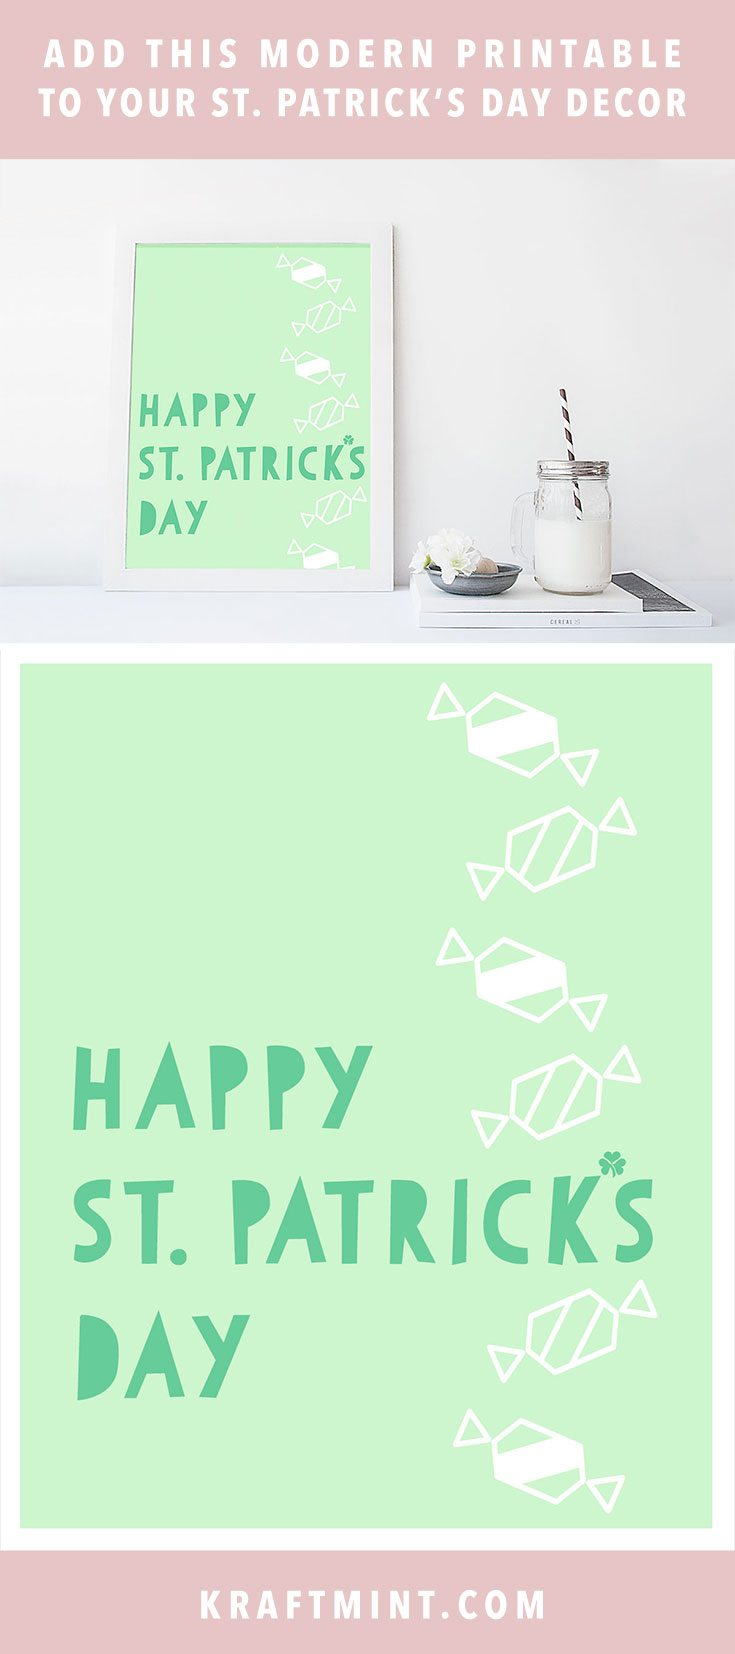 Add this modern printable to your St Patrick's day decor